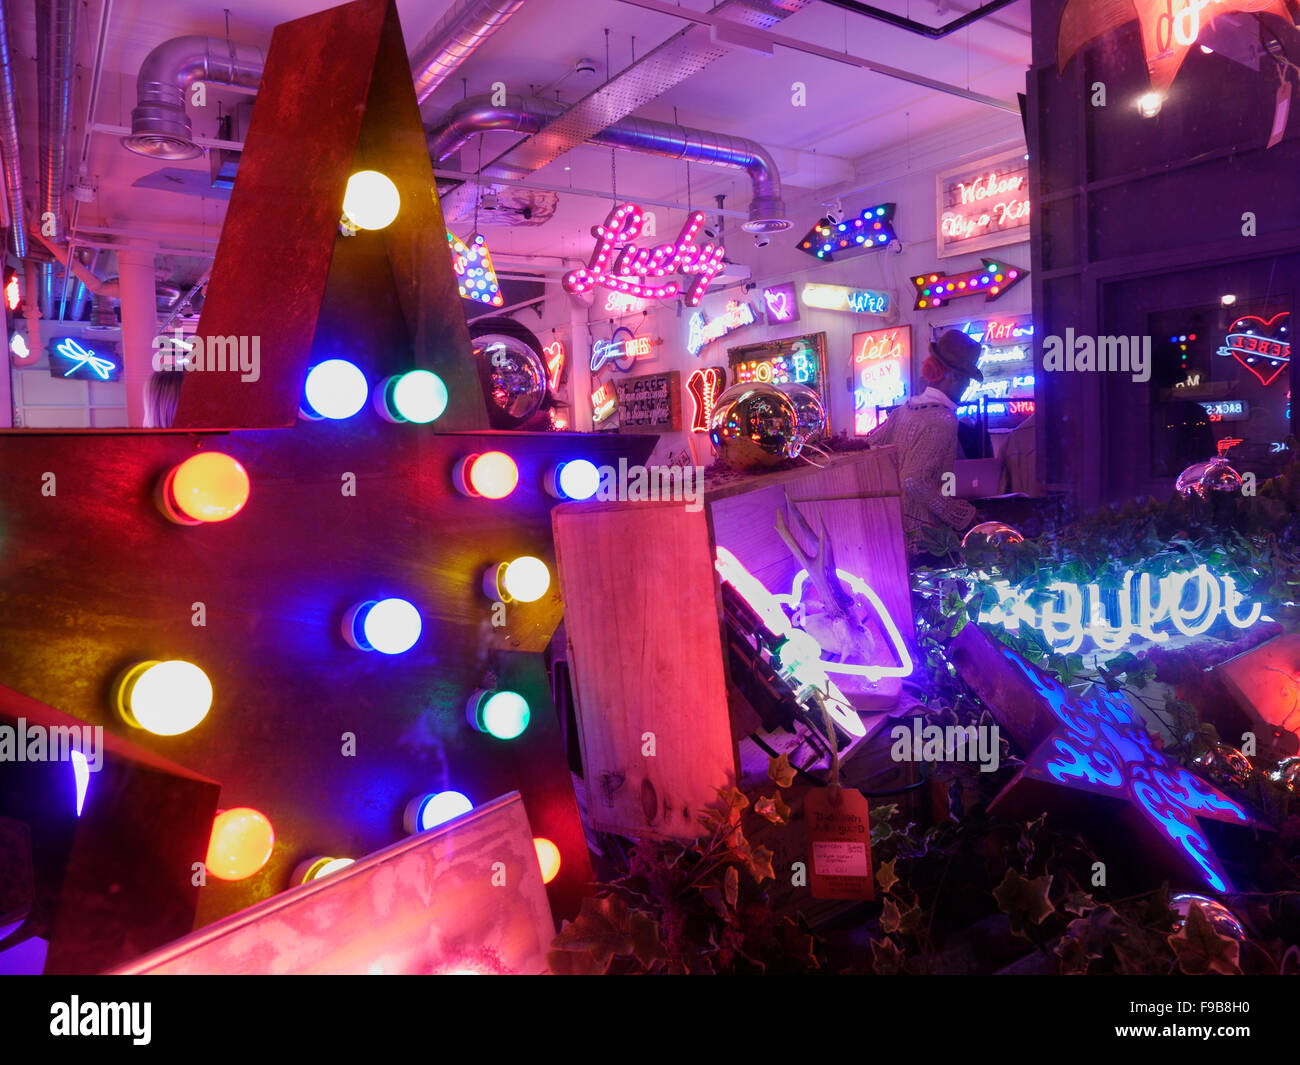 'Gods Own Junkyard' pop-up @ Lights of Soho, 35 Brewer Street, Soho, a unique designer neon lights shop - Stock Image